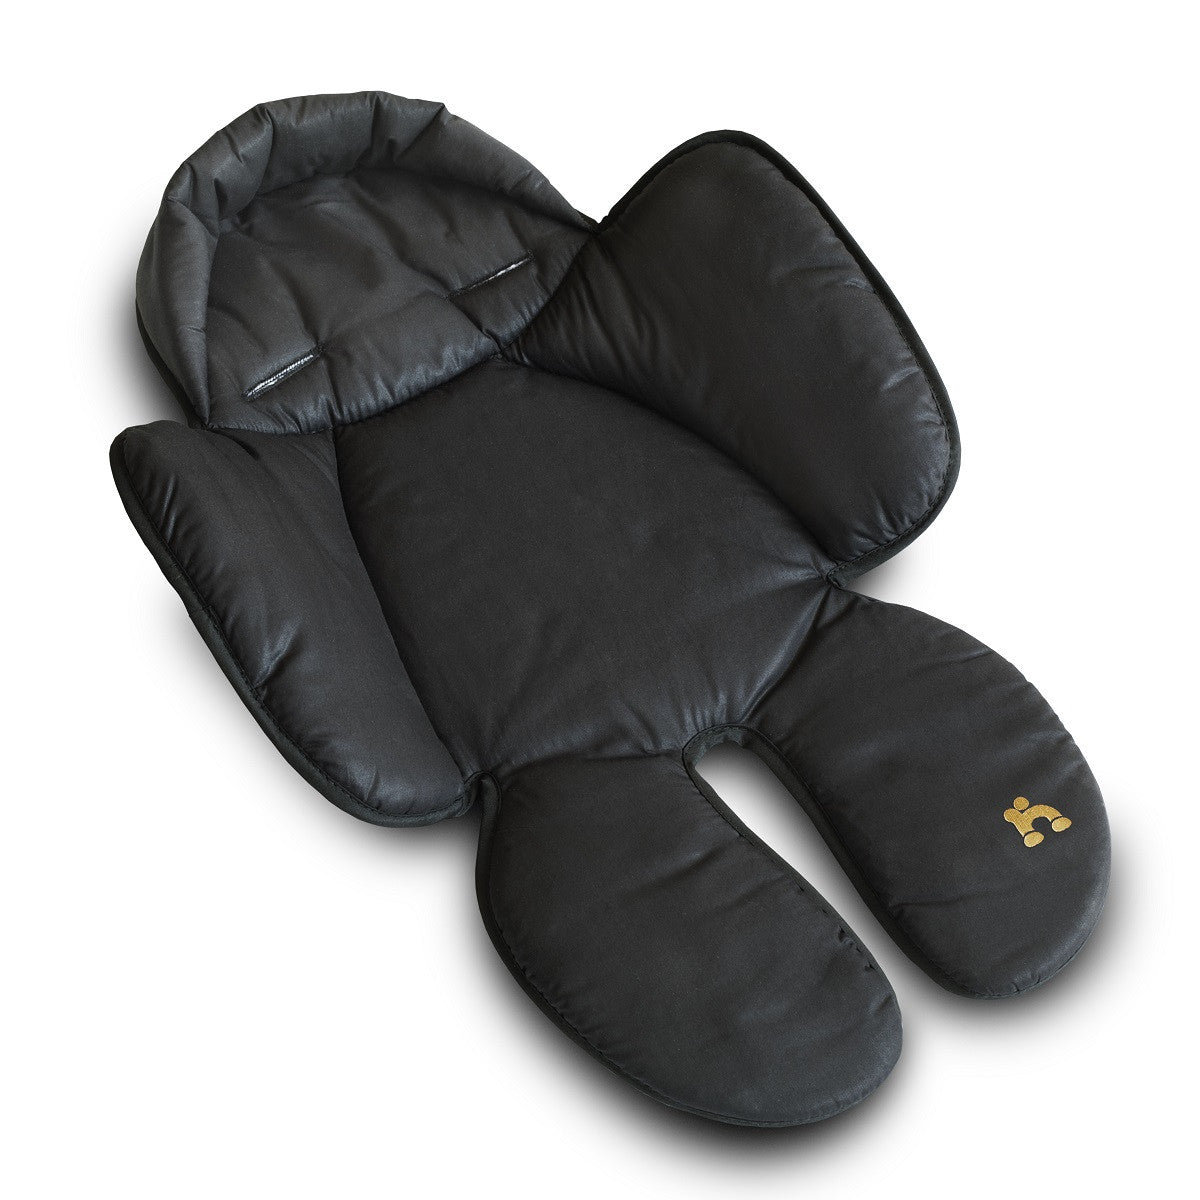 Out n About Nipper Newborn Support Cushion Insert (Black)